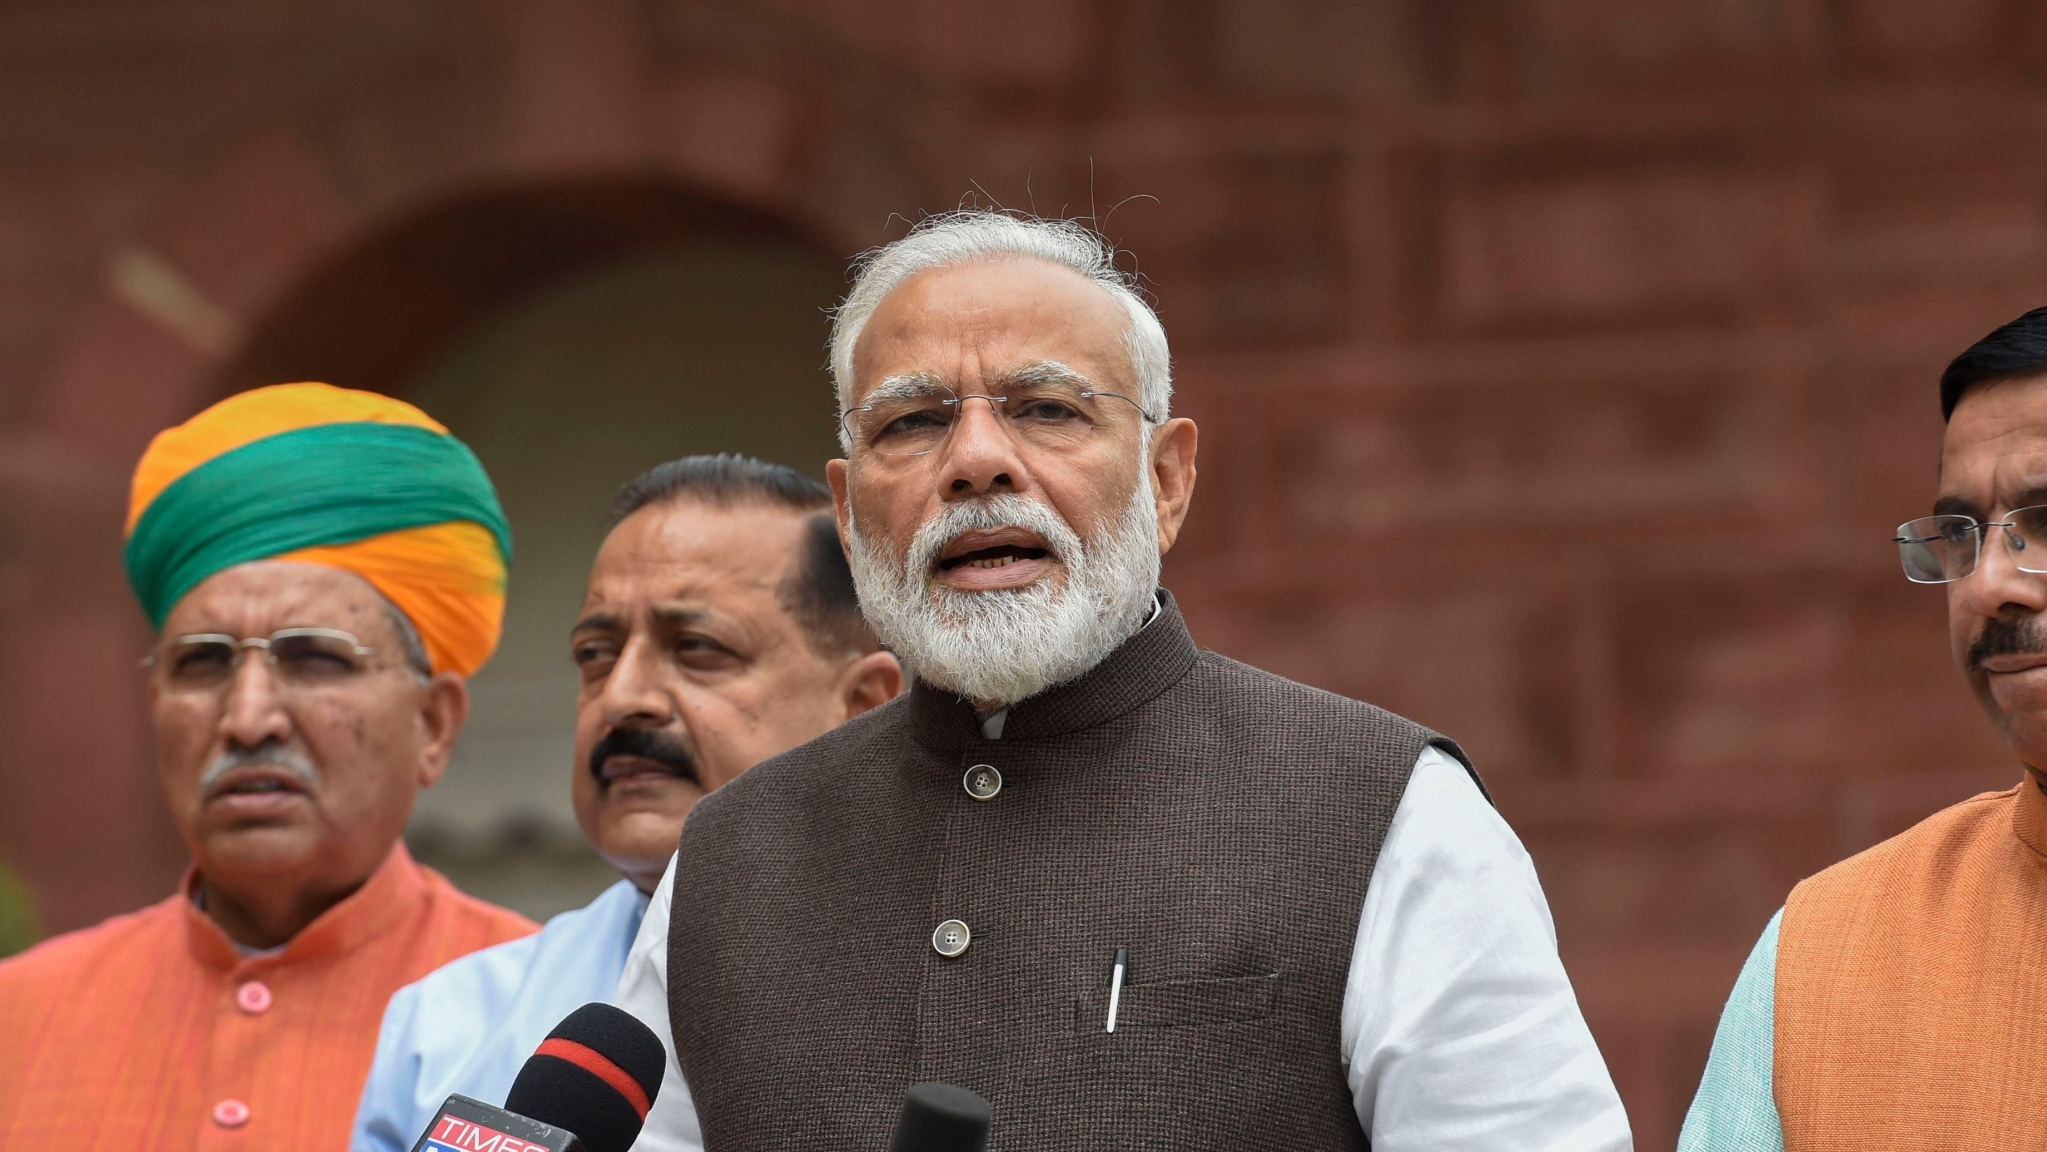 PM Modi to Talk COVID-19 in His First 'Mann Ki Baat' Amid Lockdown